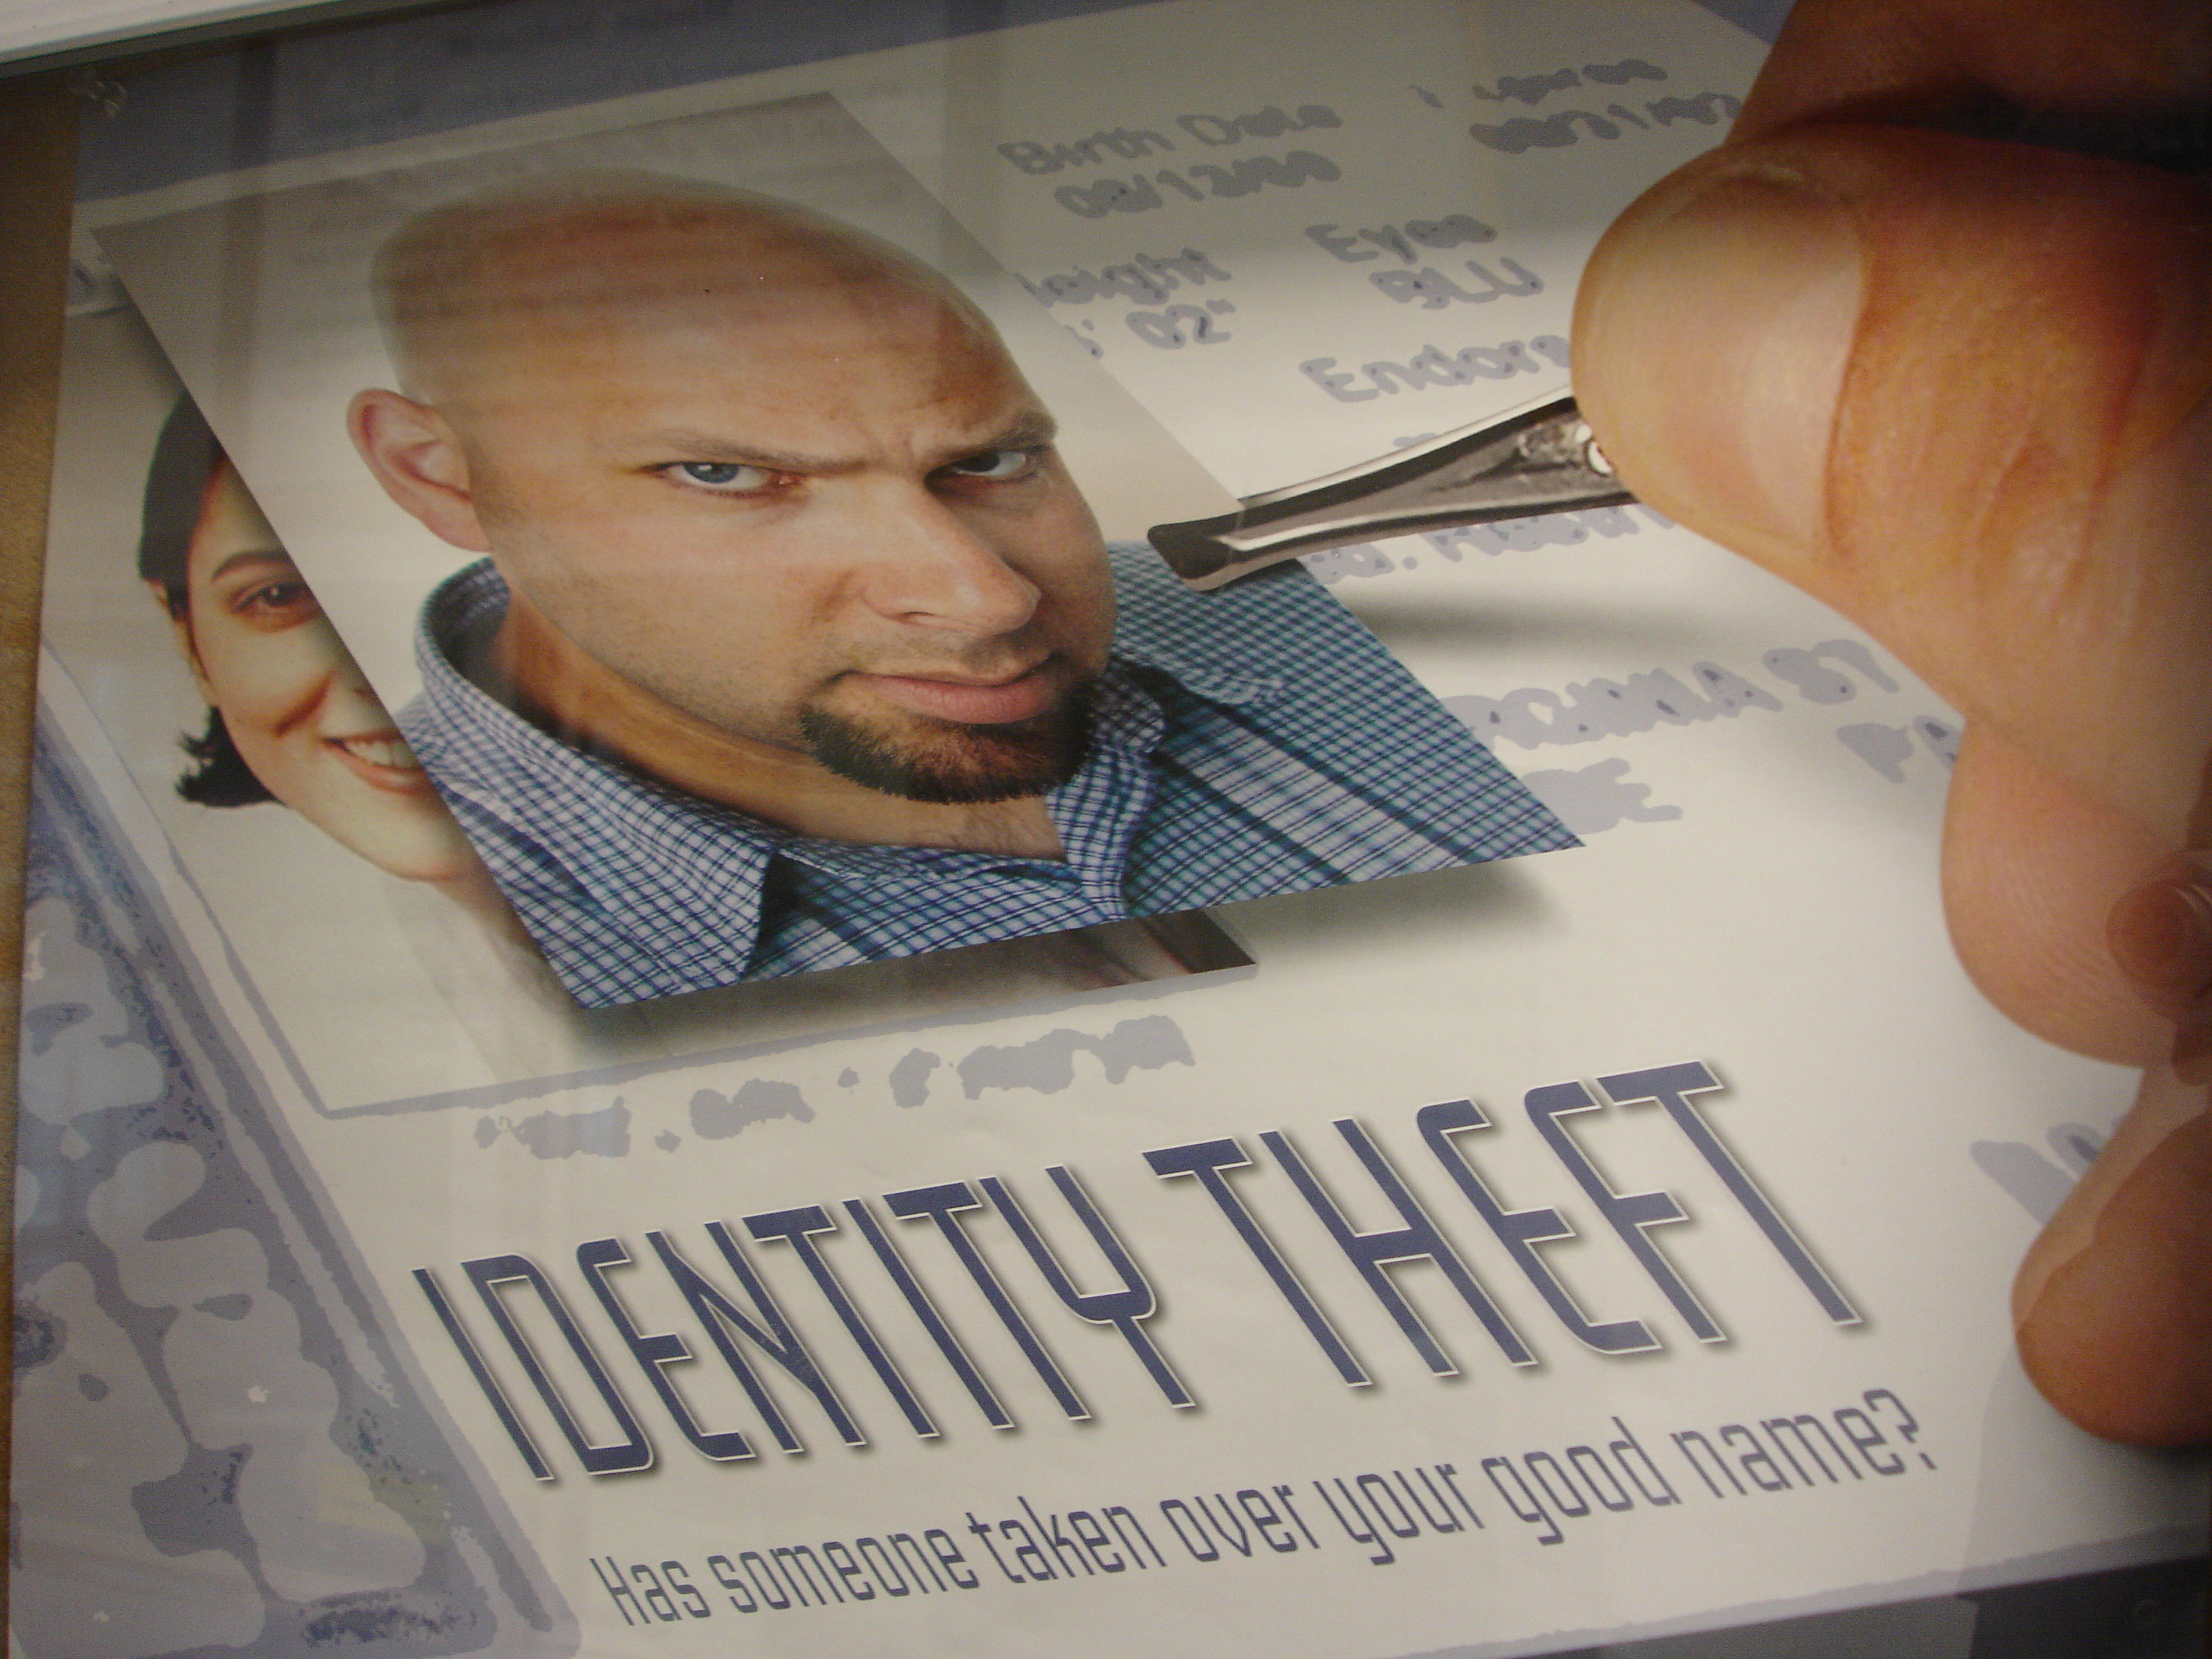 identity theft articles: